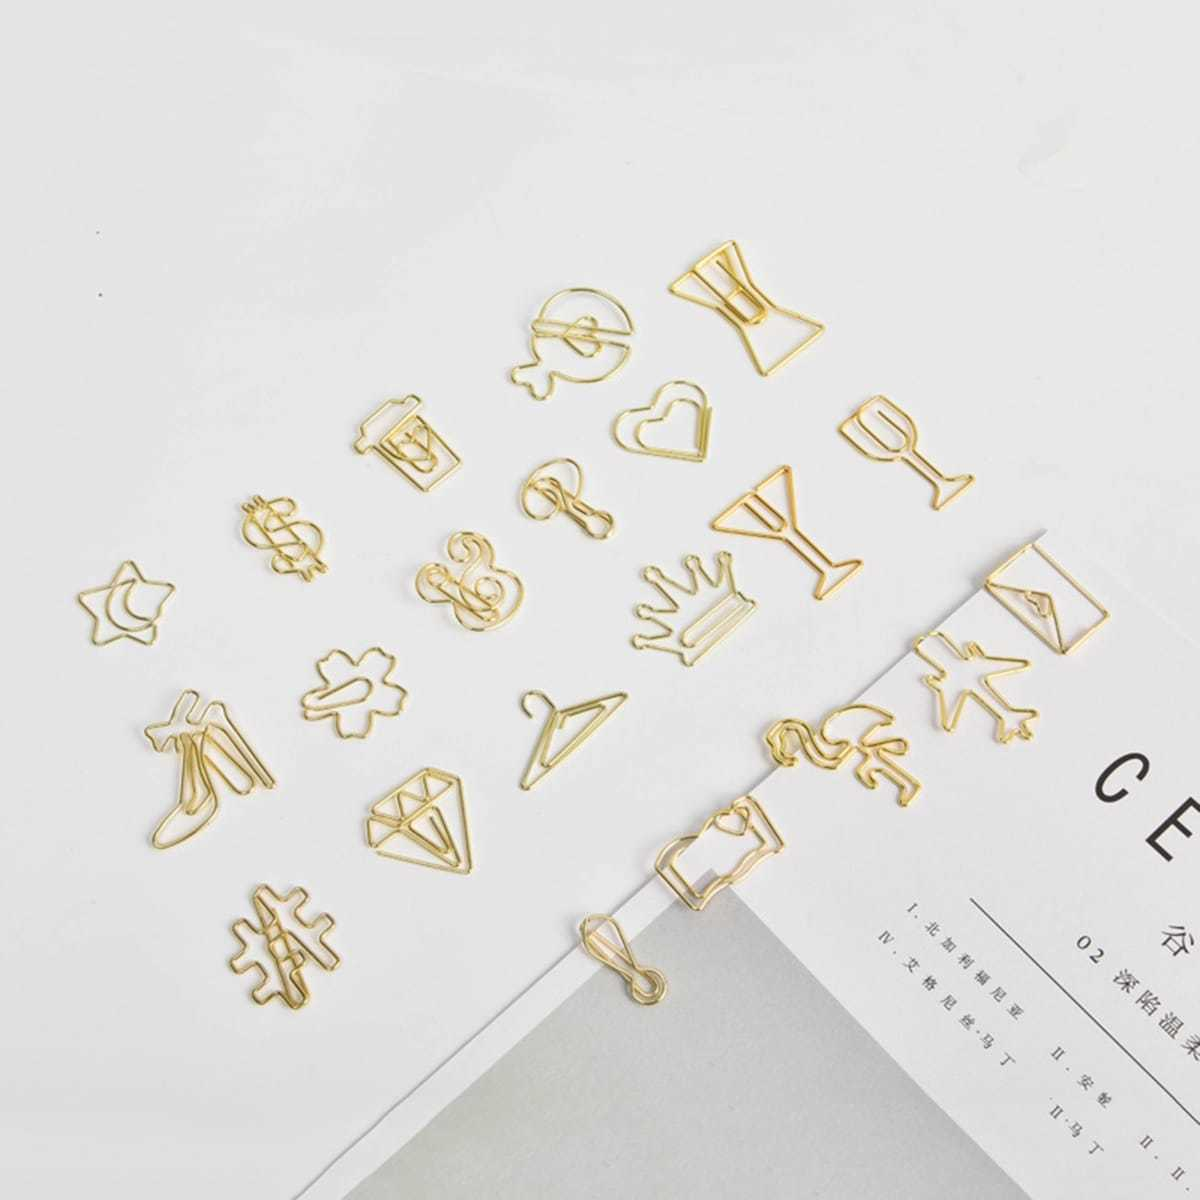 Random Creative Shaped Metal Paper Clip 4pcs in  by ROMWE on GOOFASH